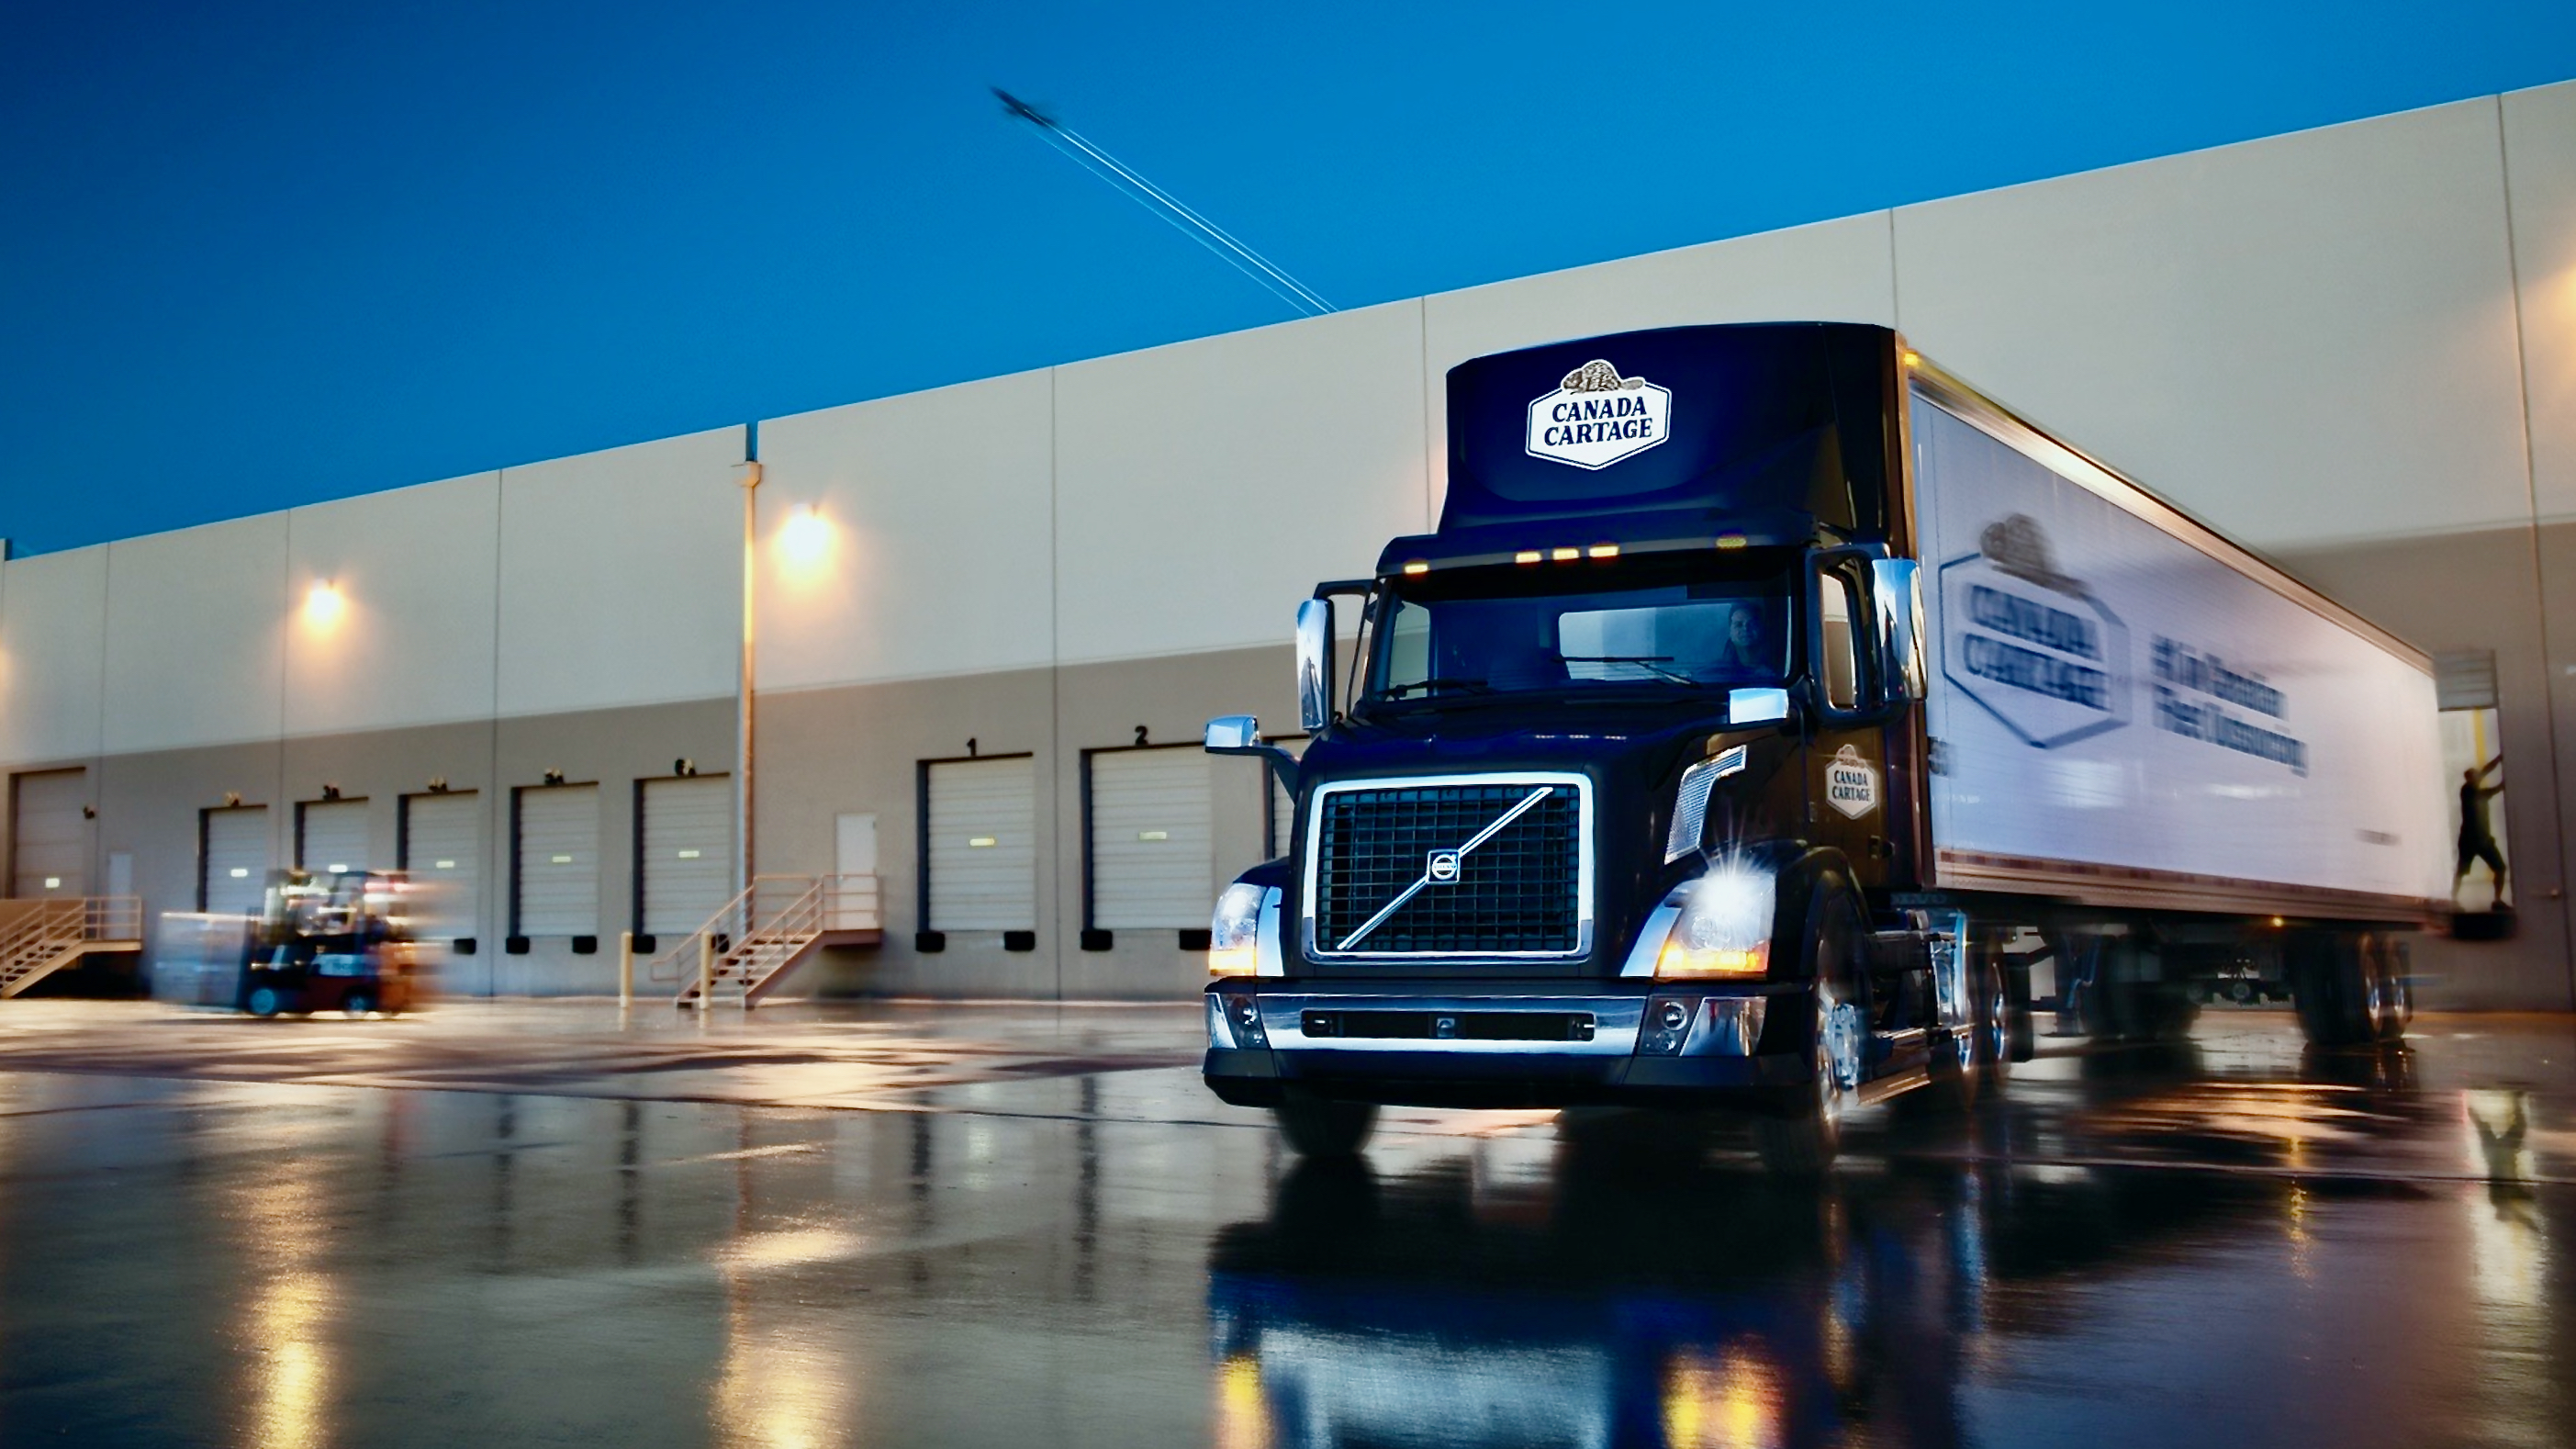 A truck from Canada Cartage exits a loading dock.